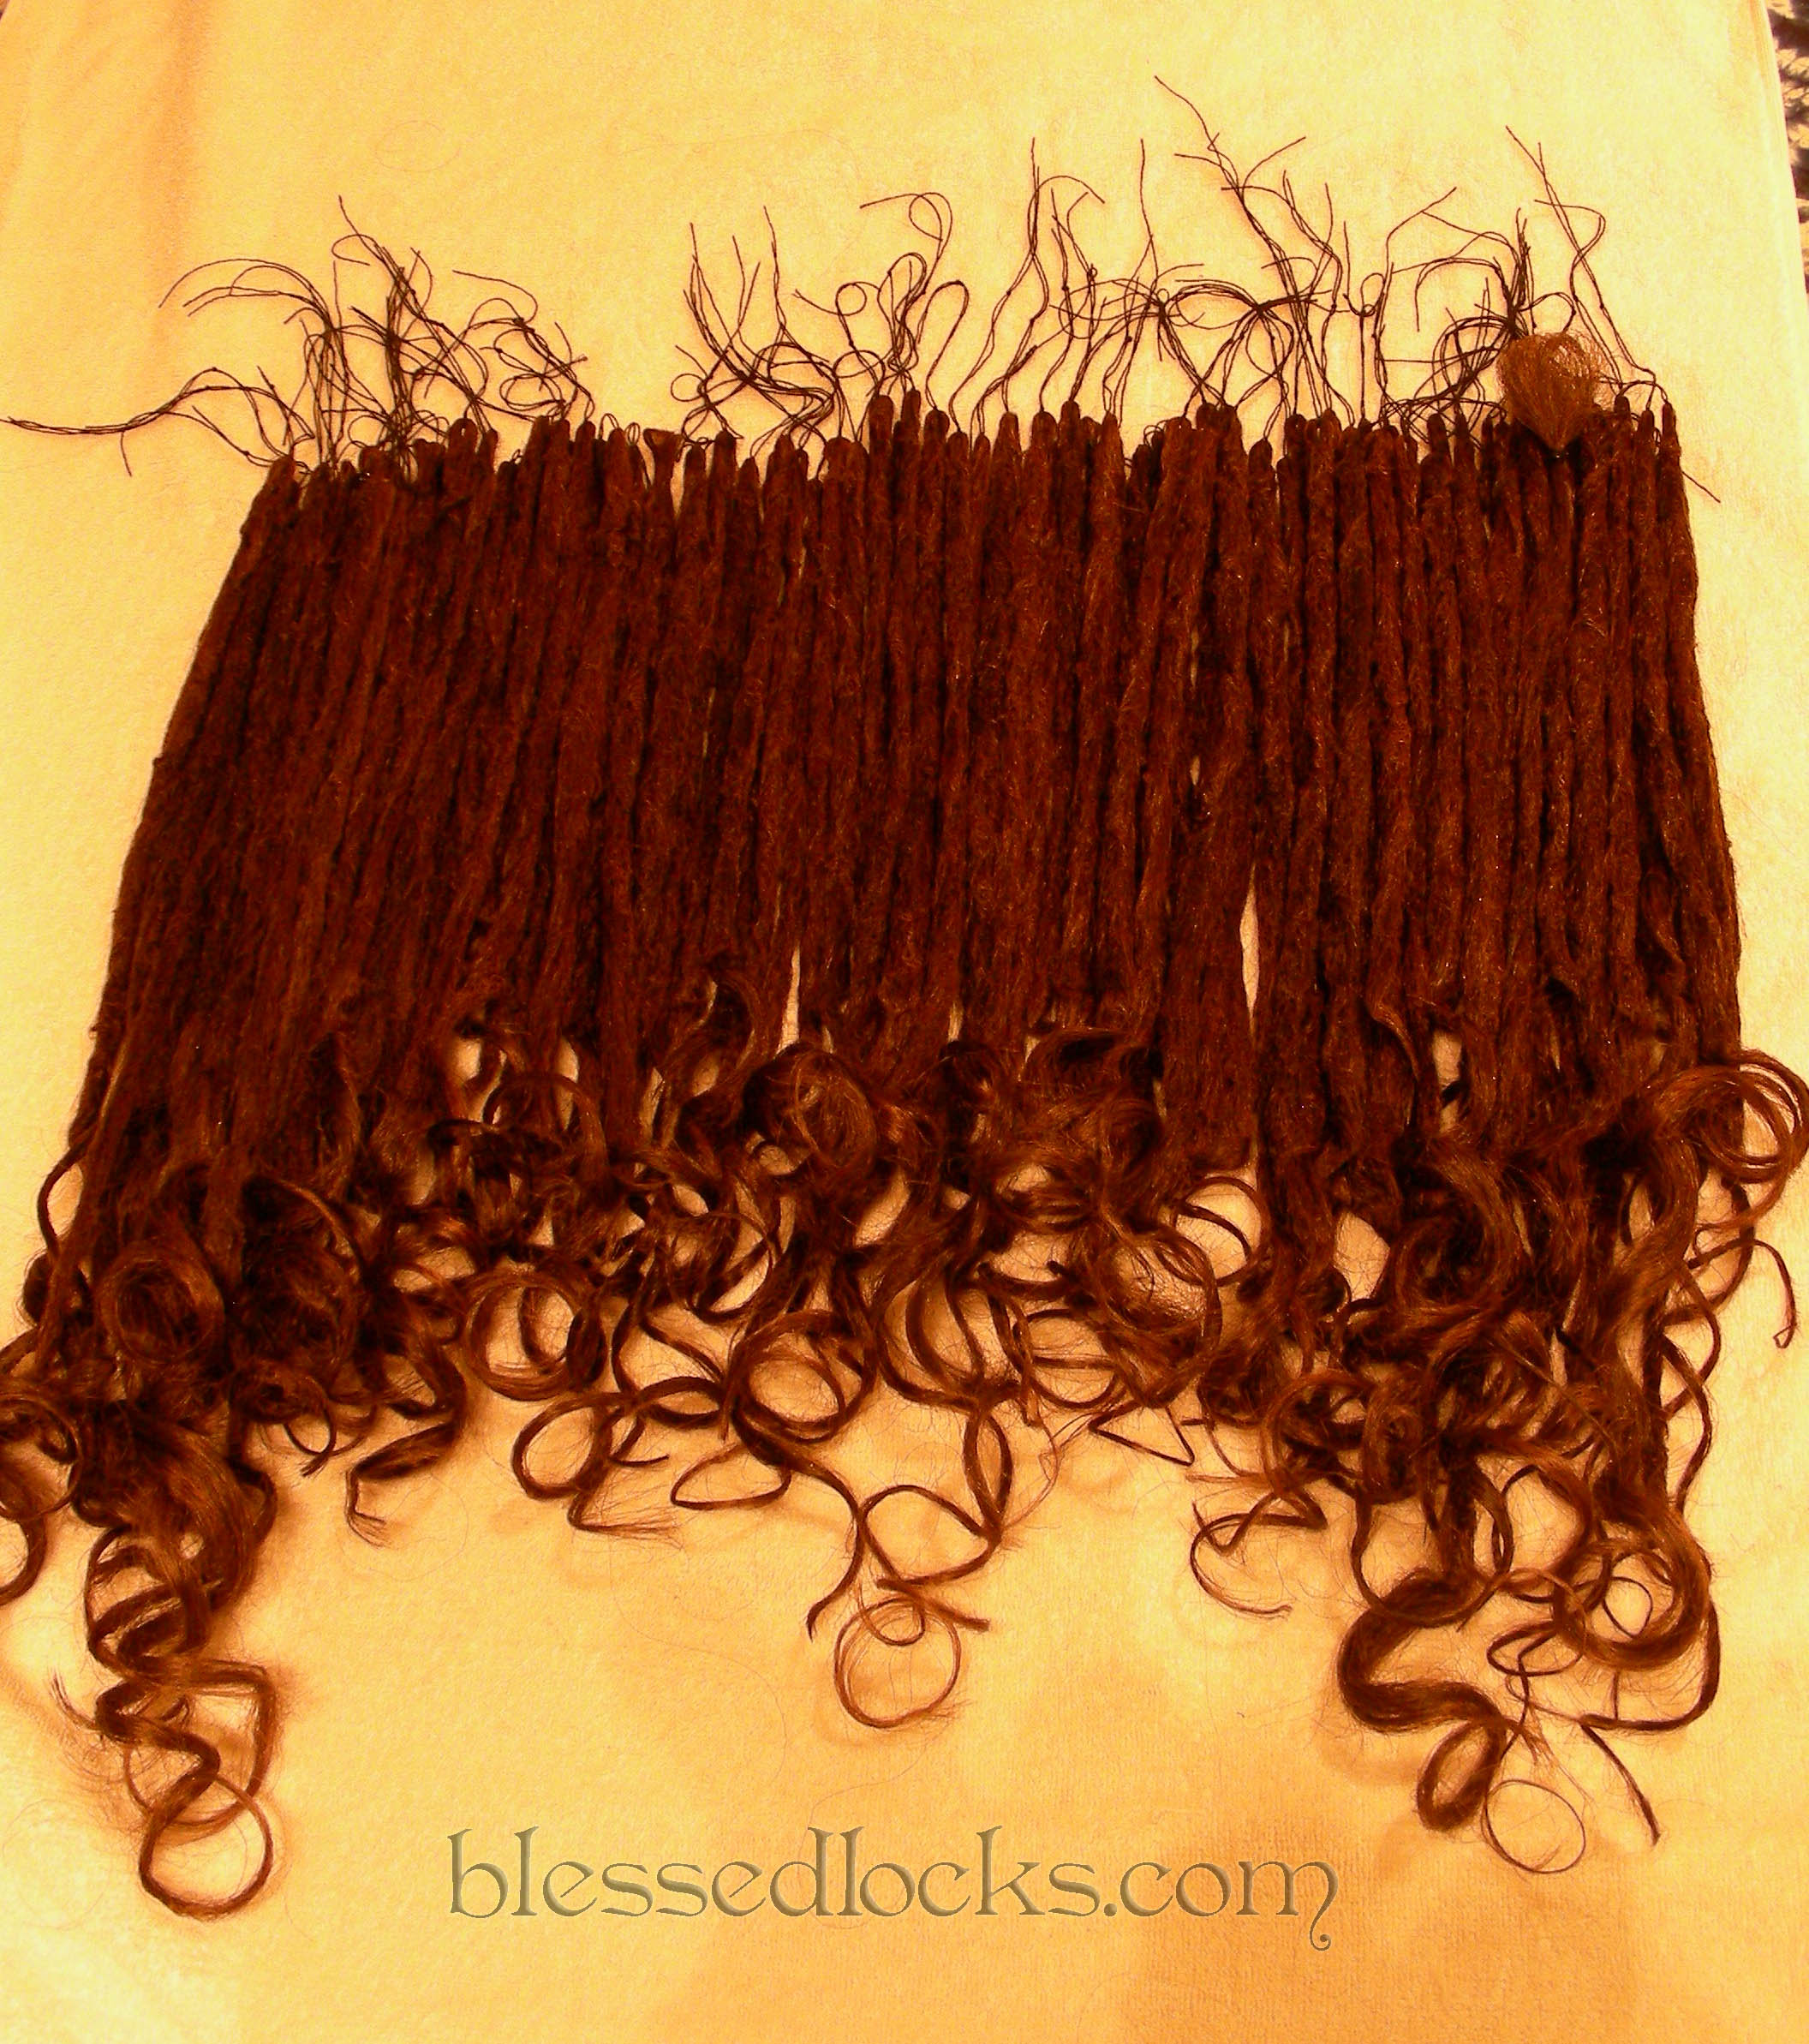 Blessed Locks Custom Dreadlock Extensions And Falls From Vancouver Bc